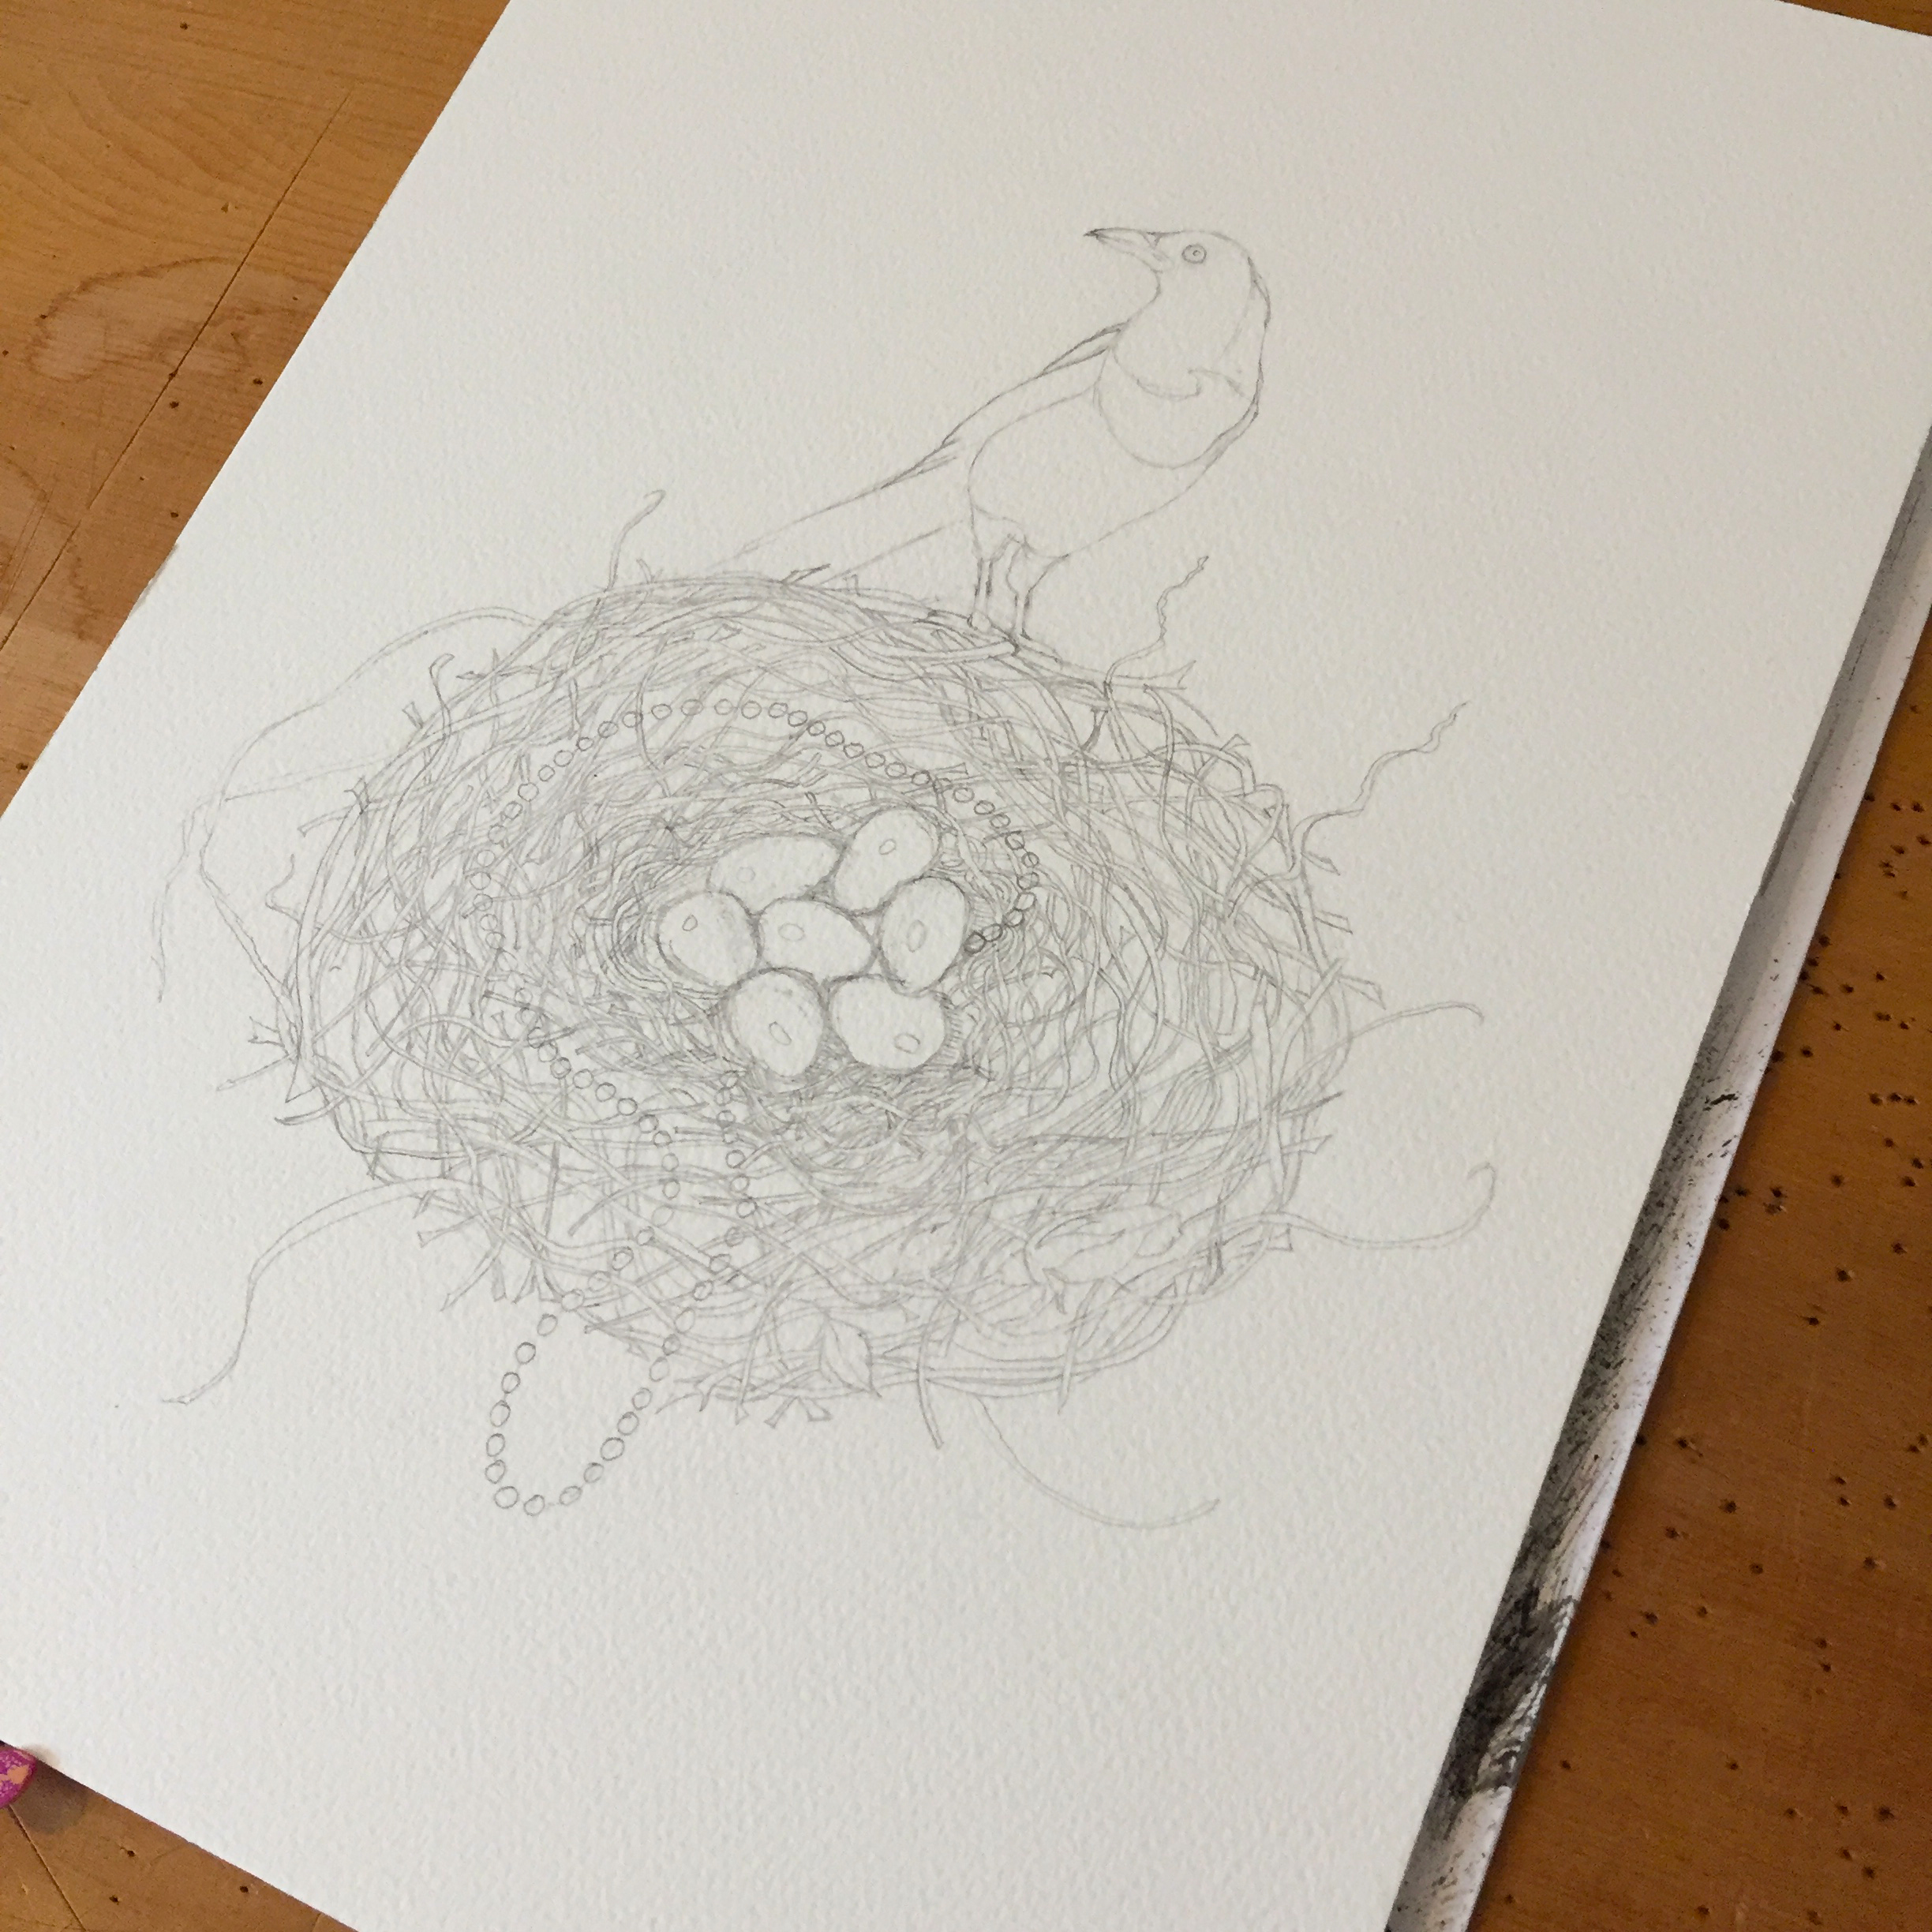 A photograph of the finished Magpie pencil sketch